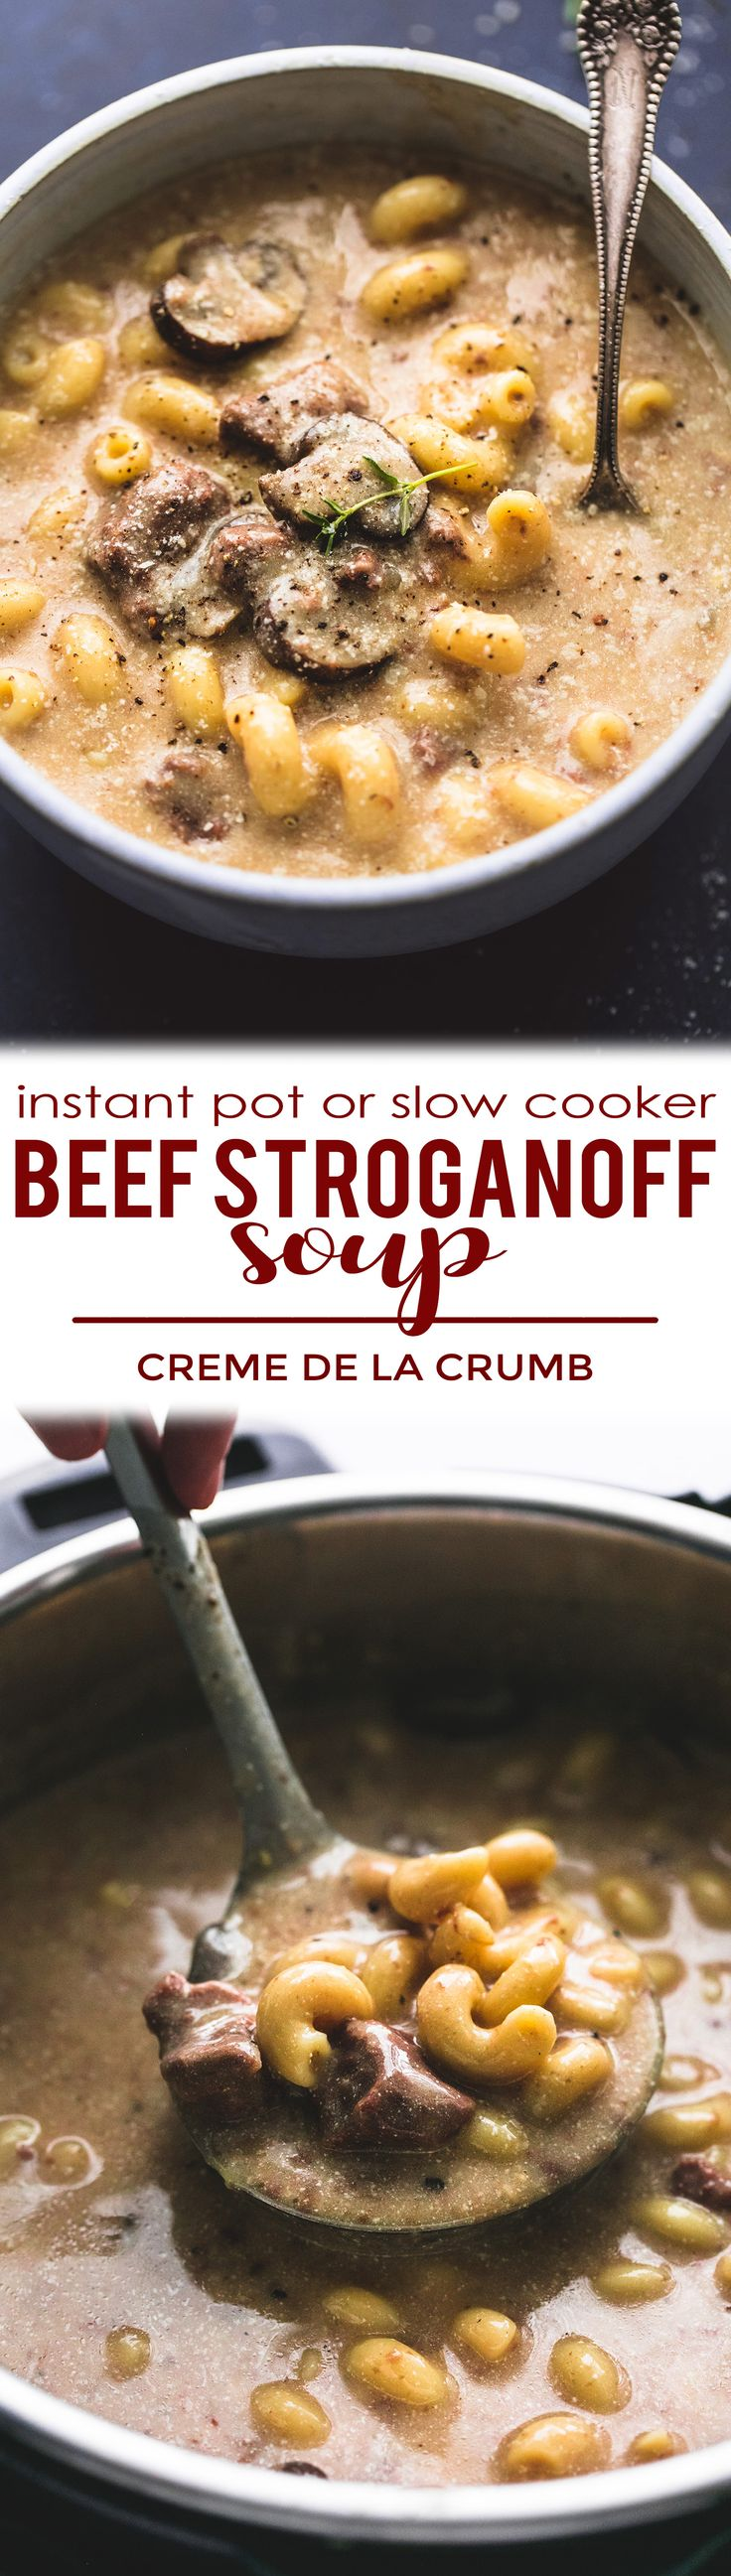 One of your favorite classic, comfort food dishes turned into a creamy, savory soup! This instant pot or slow cooker beef stroganoff is a must make all year round. | lecremedelacrumb.com #beefstroganoff #instantpot #slowcooker #crockpot #easy #soup #recip http://eatdojo.com/healthy-soup-recipes-for-weight-loss-easy-yummy/